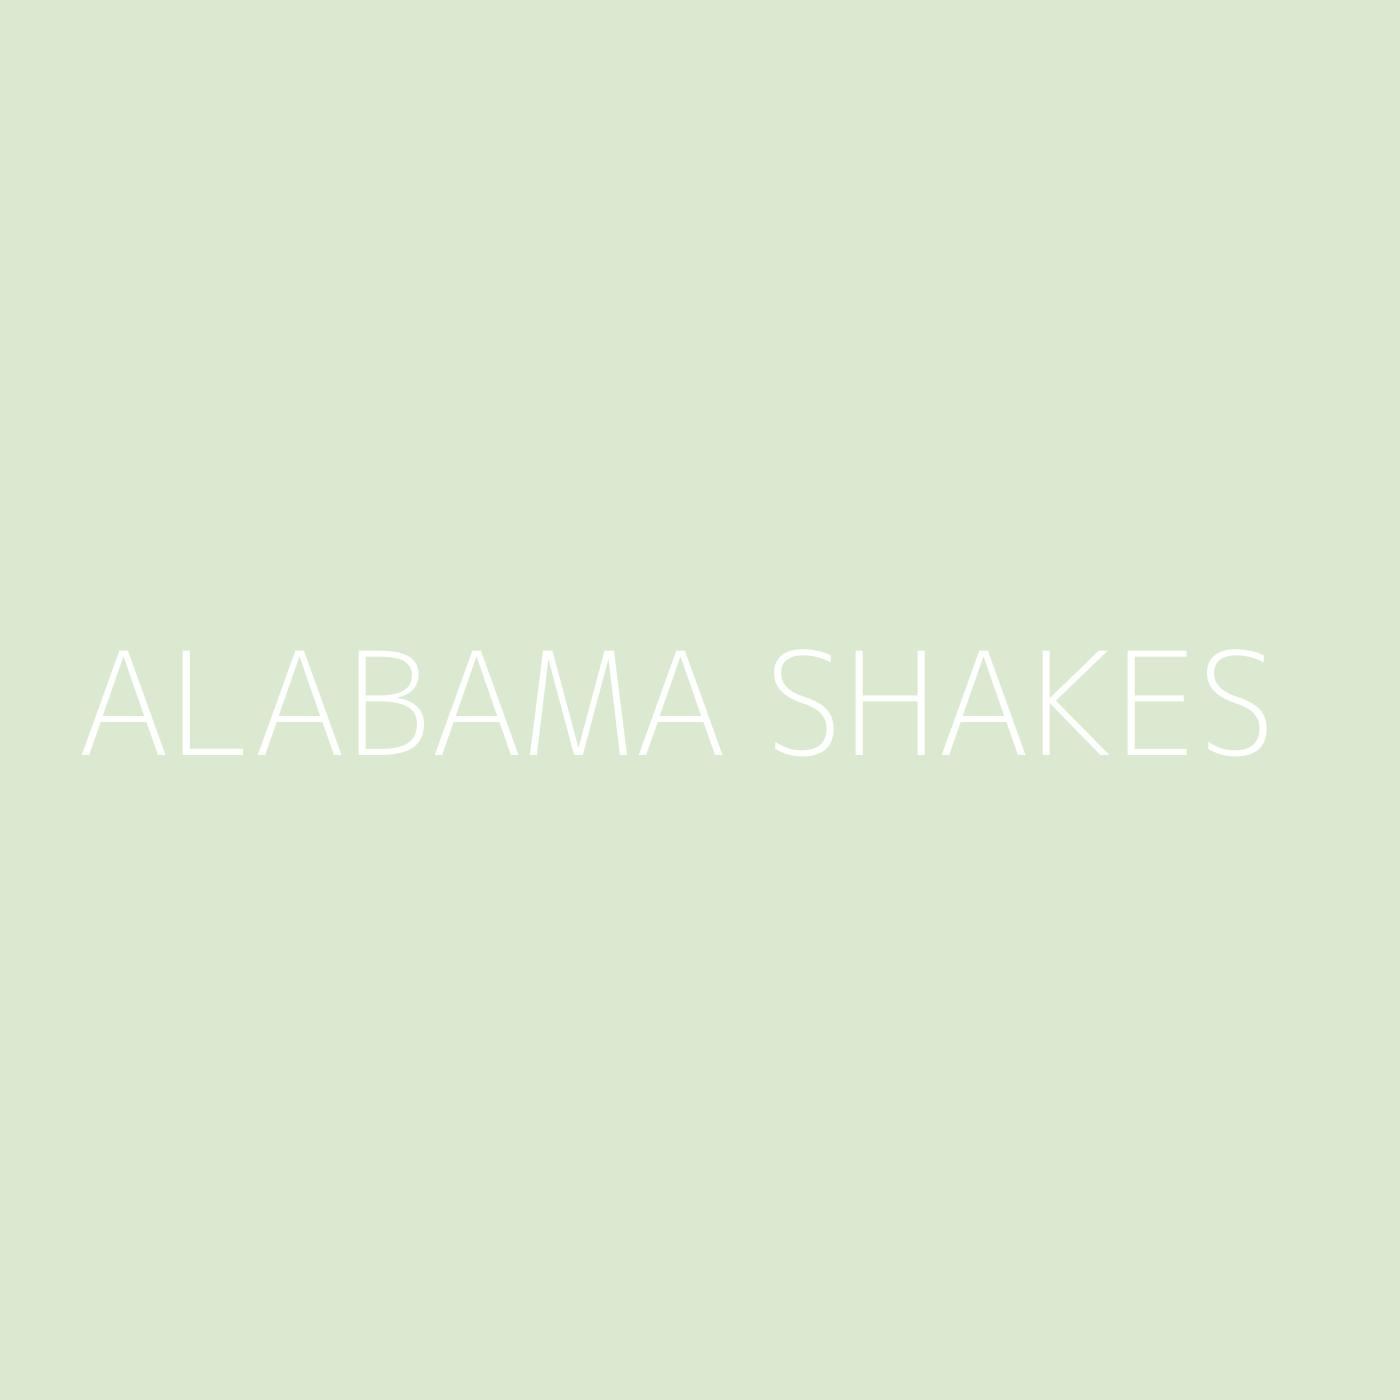 Alabama Shakes Playlist Artwork